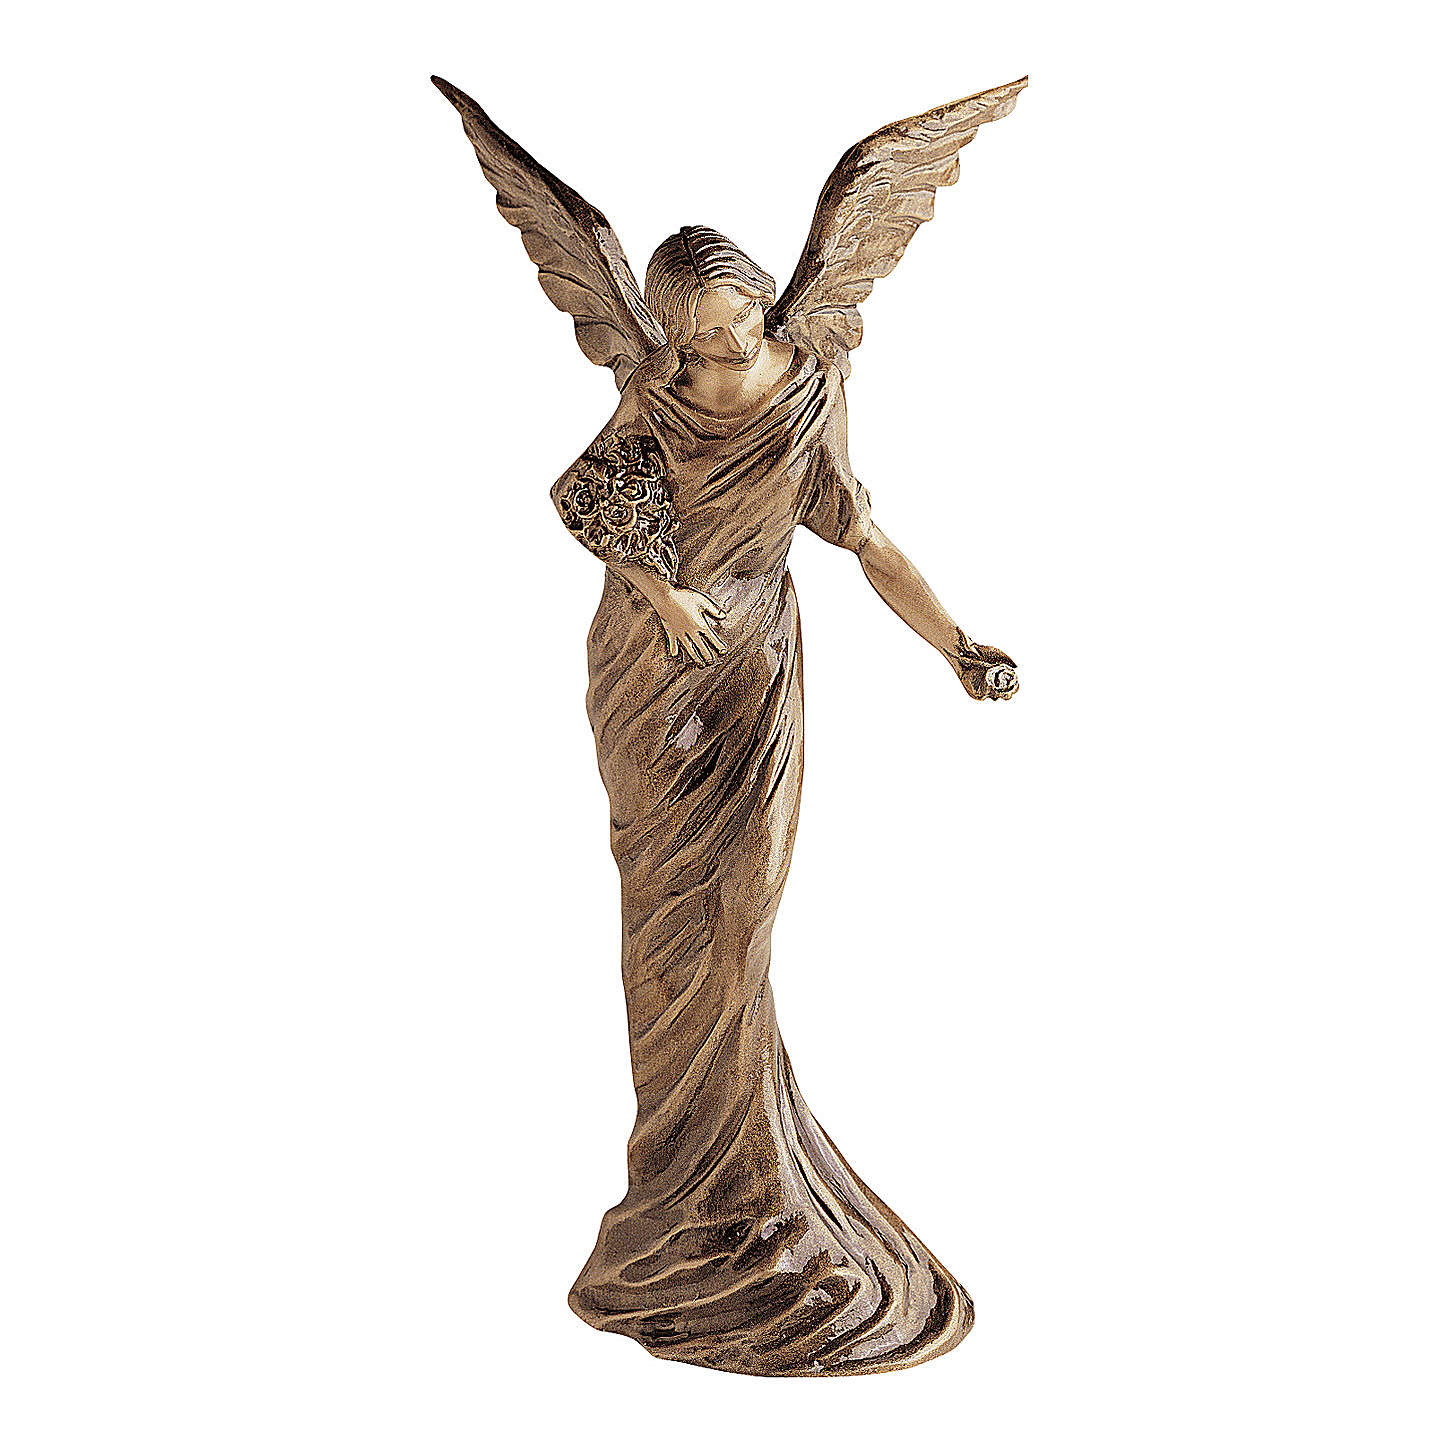 Statue of Angel scattering flowers in bronze 55 cm for EXTERNAL USE 4